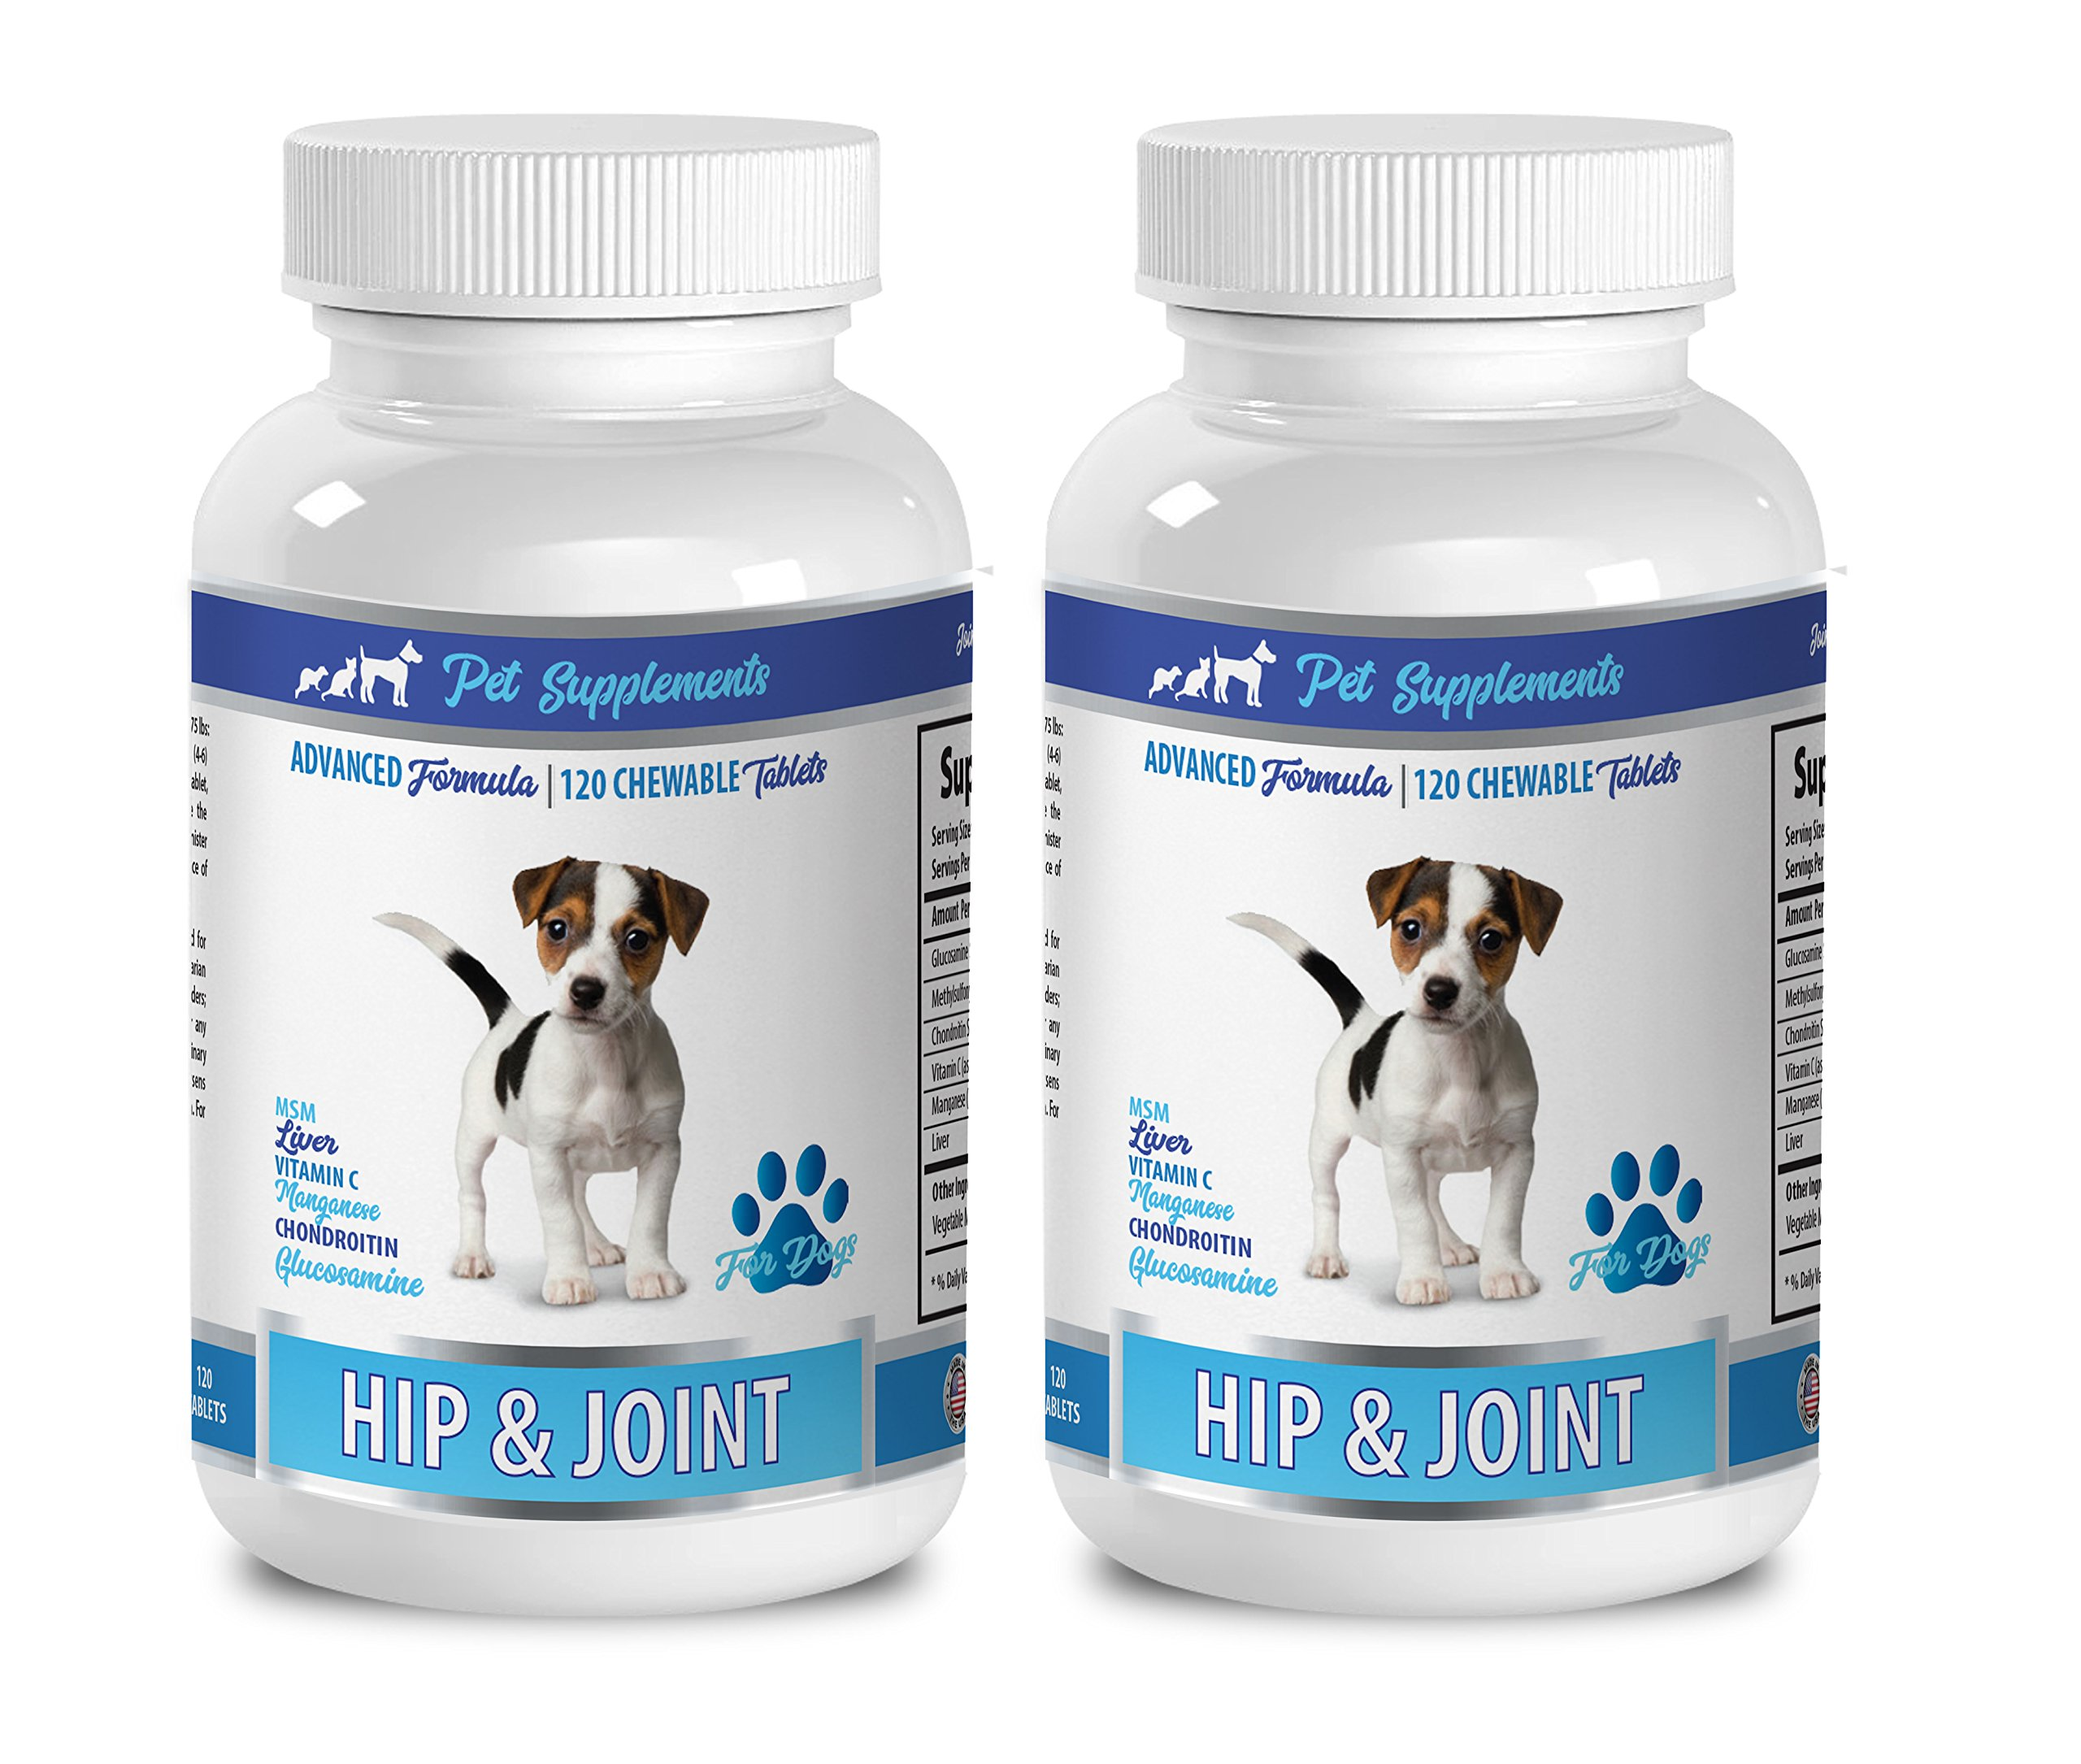 Cheap Glucosamine Joint Care Find Deals On Puritan Pride Triple Strength Soother Chondroitin Msm 90 Caplets Get Quotations 4paws Pet Supplements Hip For Dogs And Support